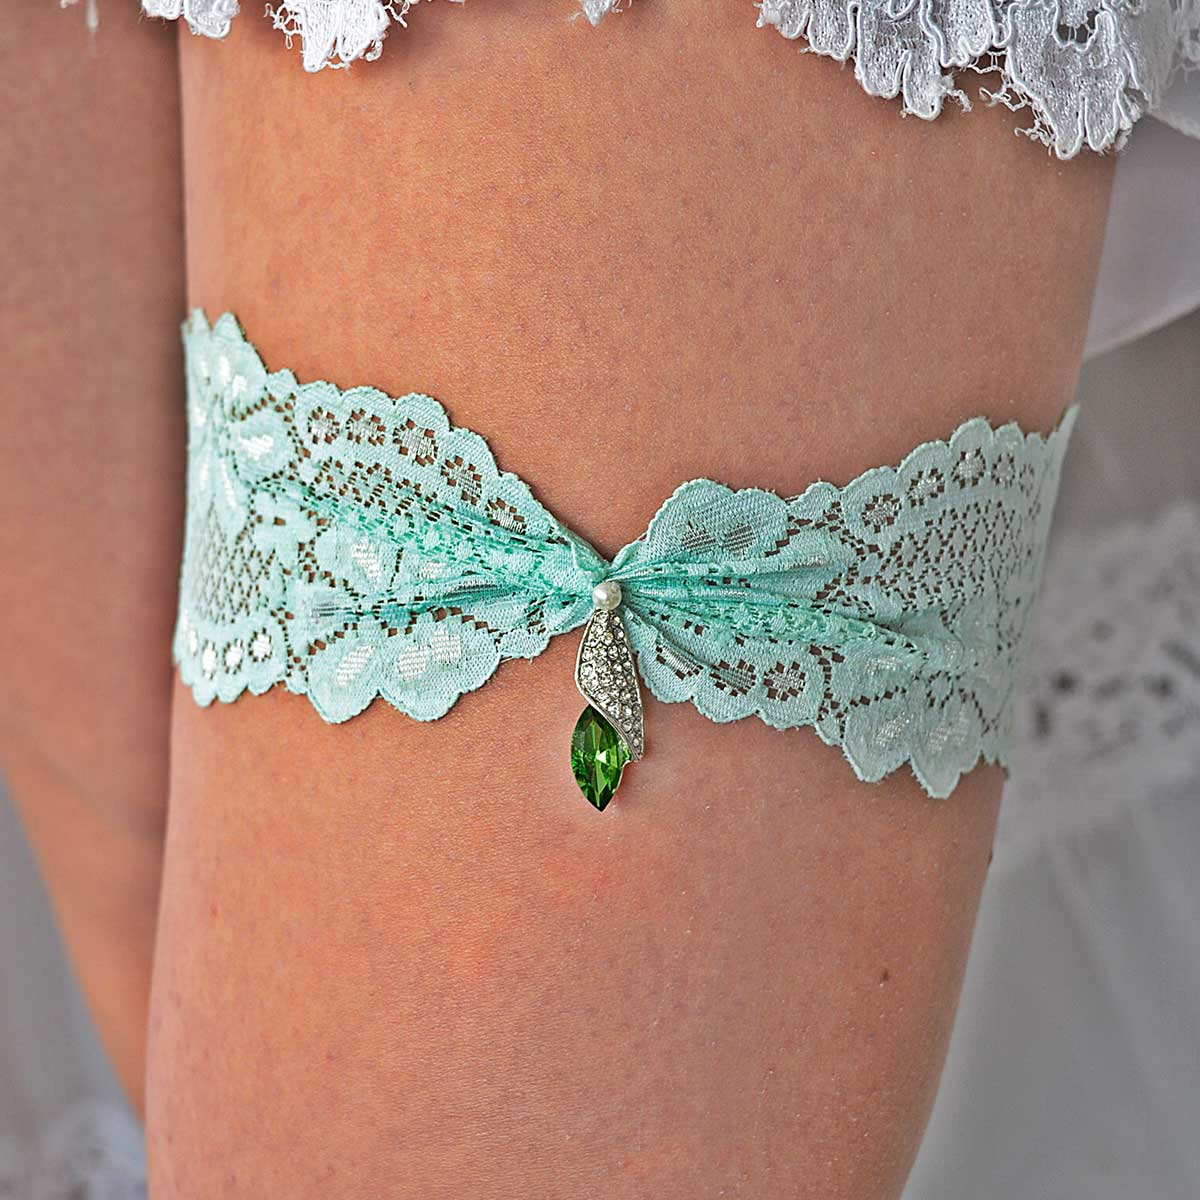 Clear & Green Rhinestone Bridal Garter Belt With Mint Lace